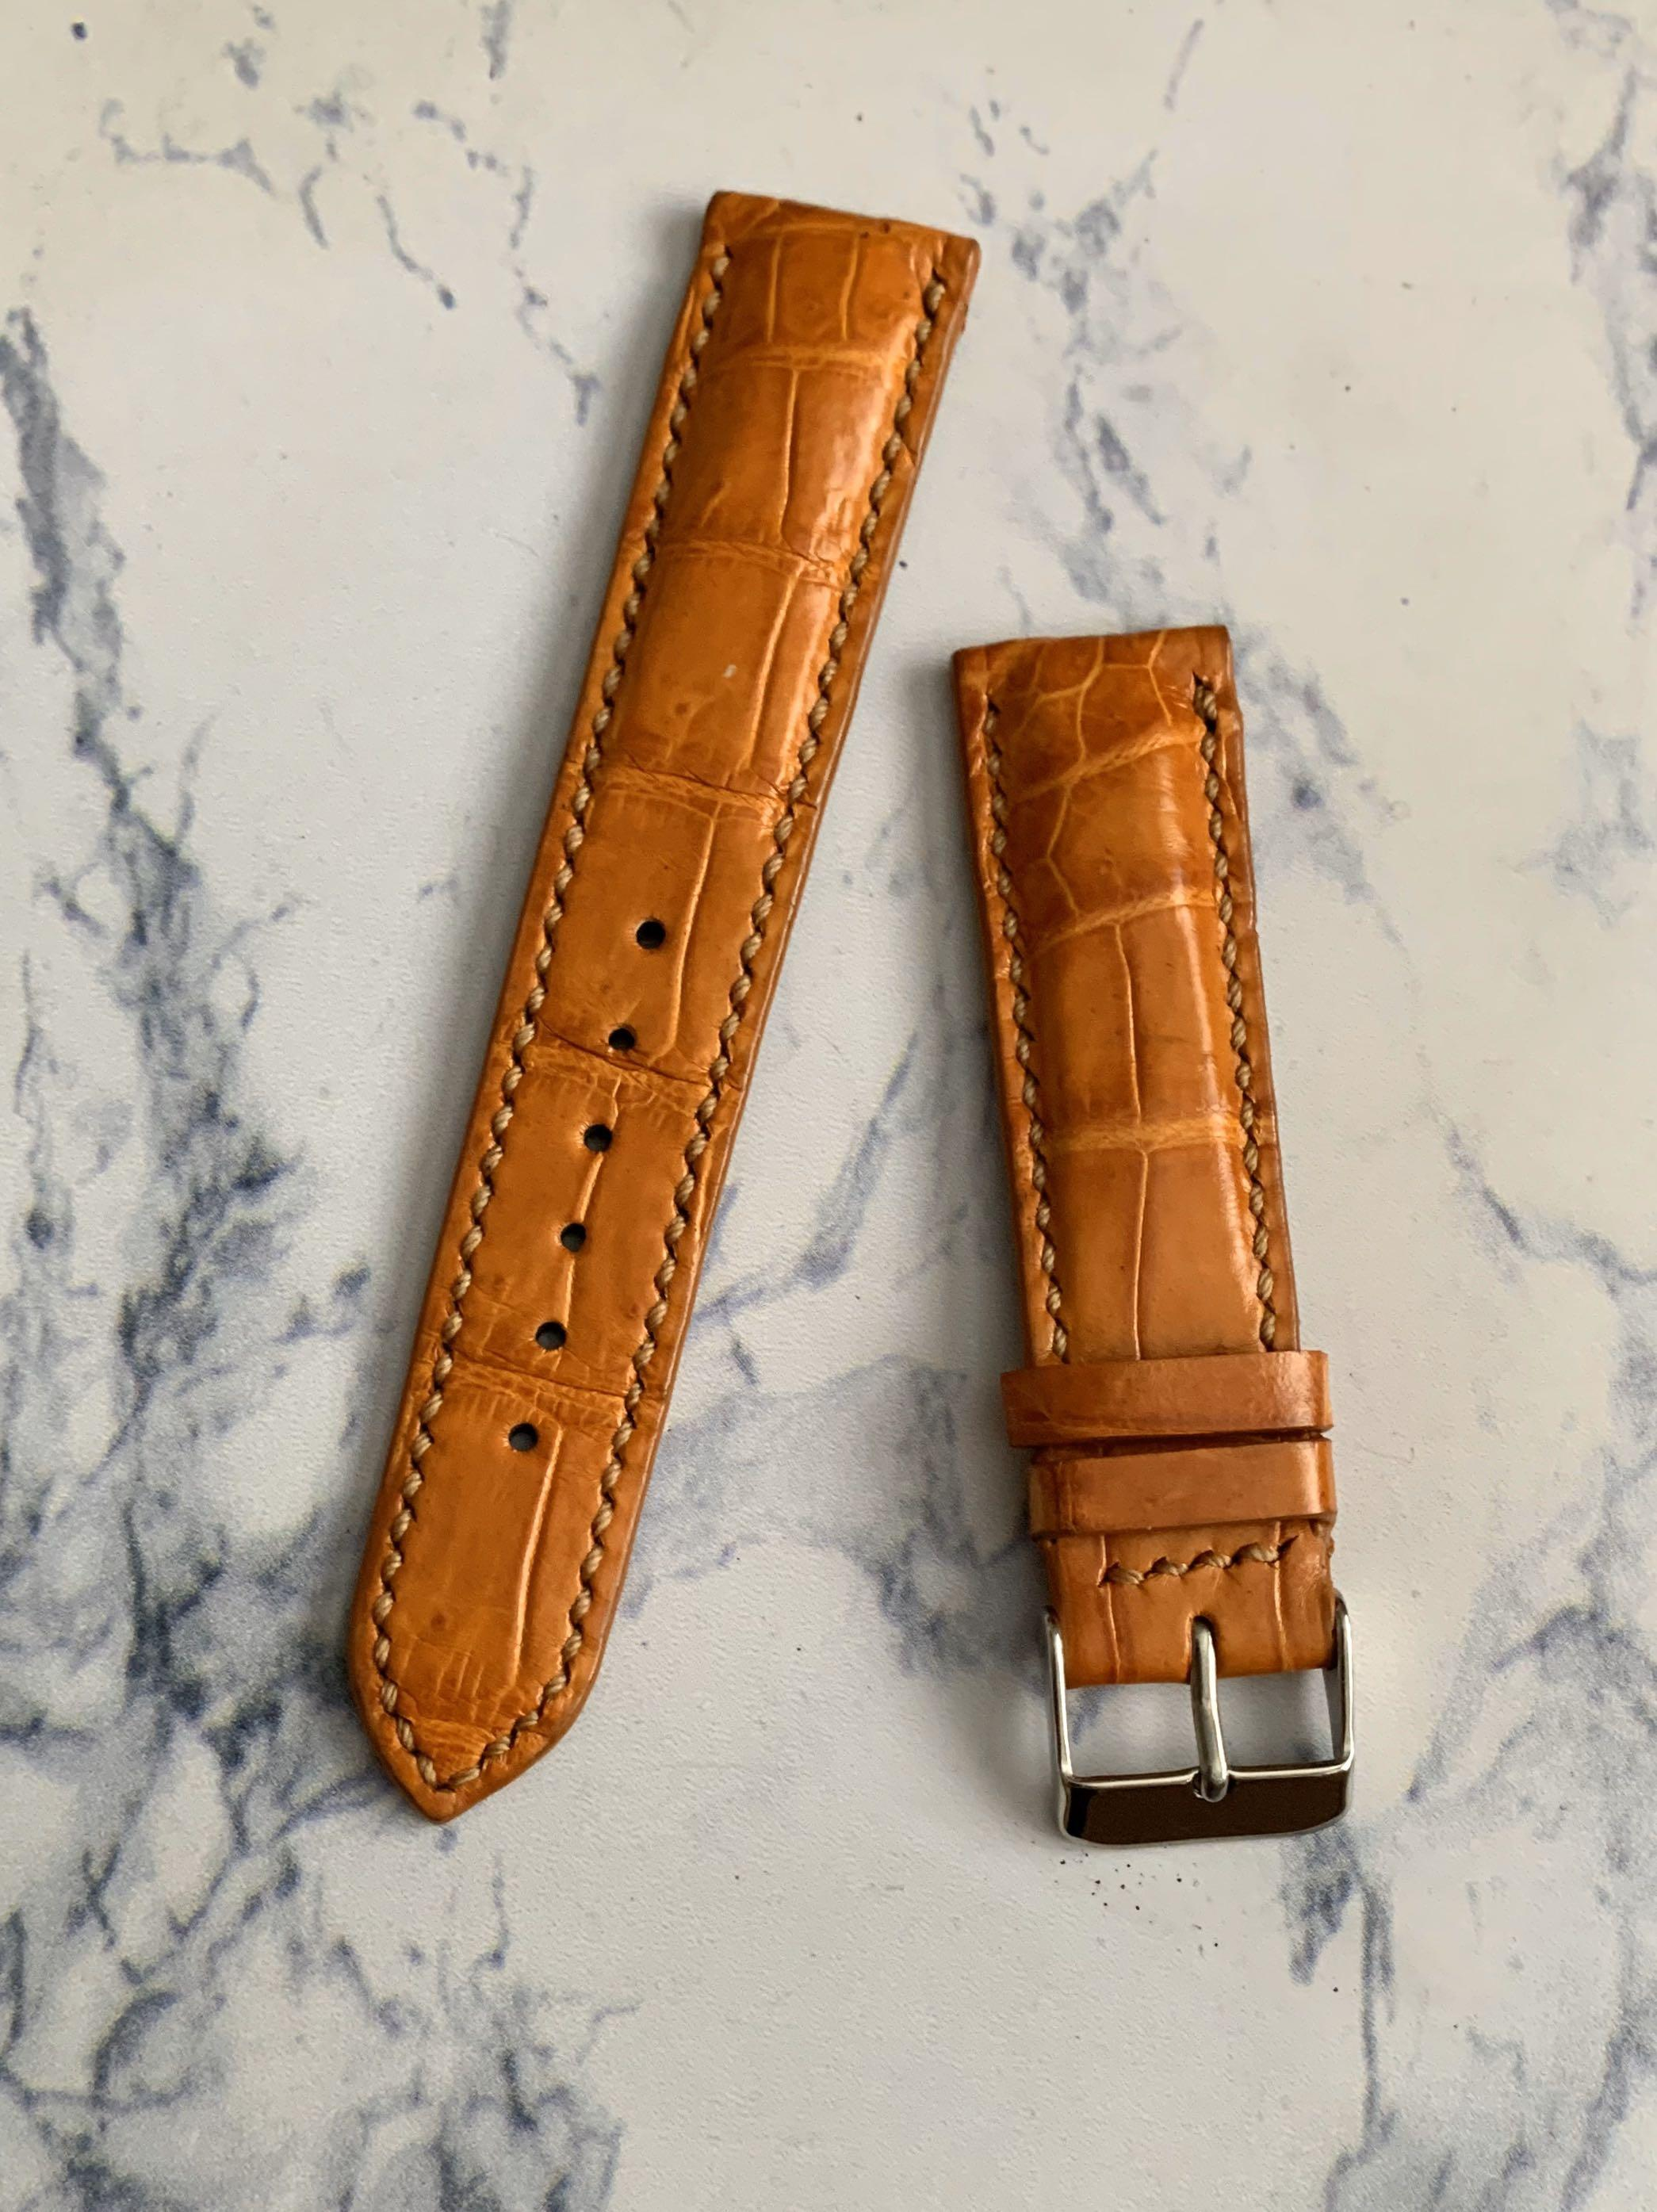 20mm/18mm Authentic Golden Sunrise Brown Crocodile 🐊 Alligator Watch Strap  (smooth croc belly)  Standard Length- L:120mm S:75mm